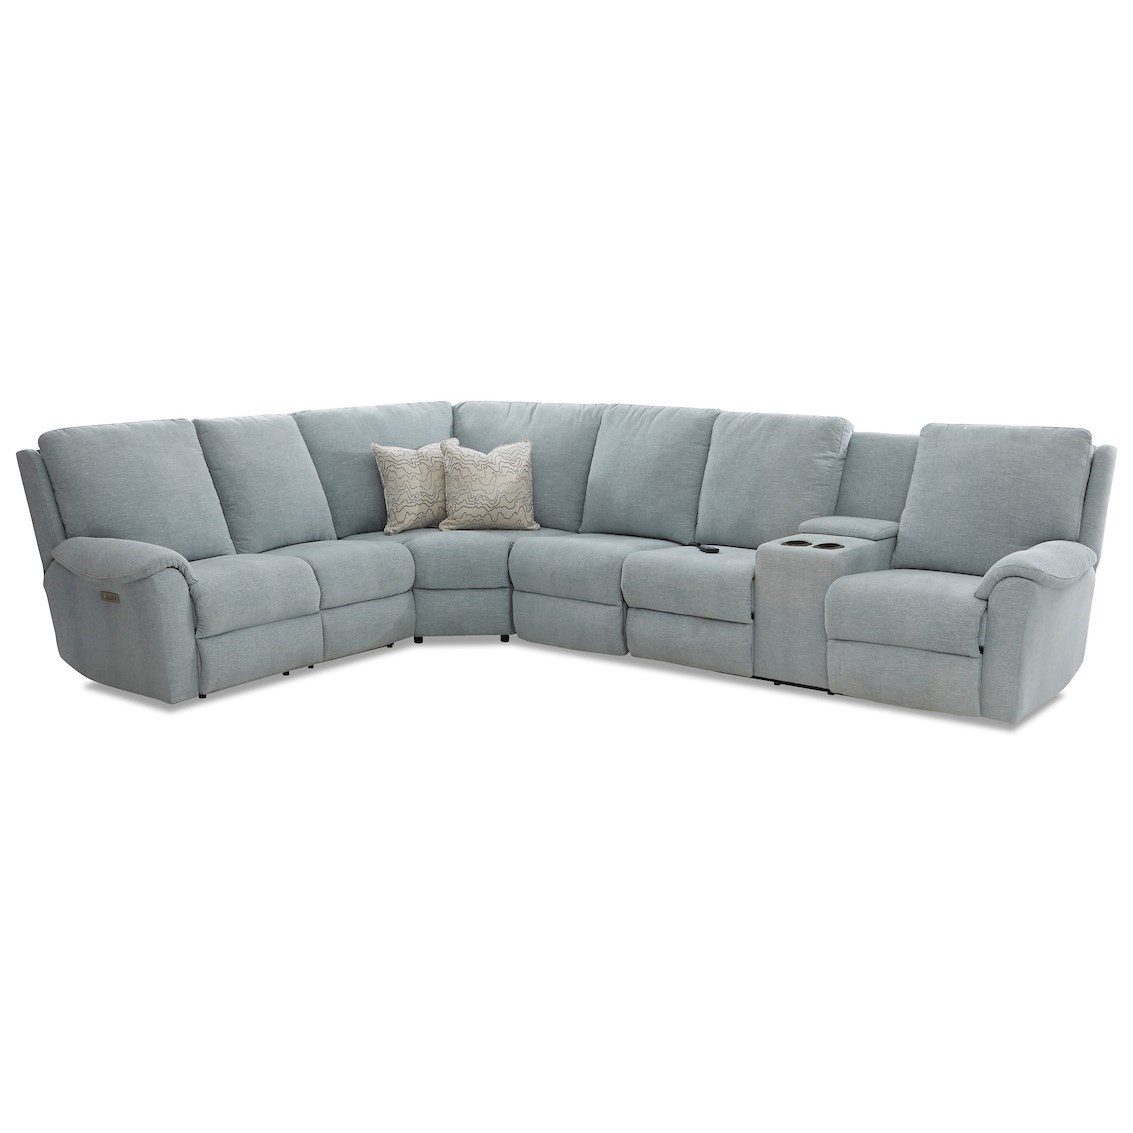 Davos Pwr Recline Sectional w/RAF Cnsl/PwrHeadrest by Klaussner at Northeast Factory Direct